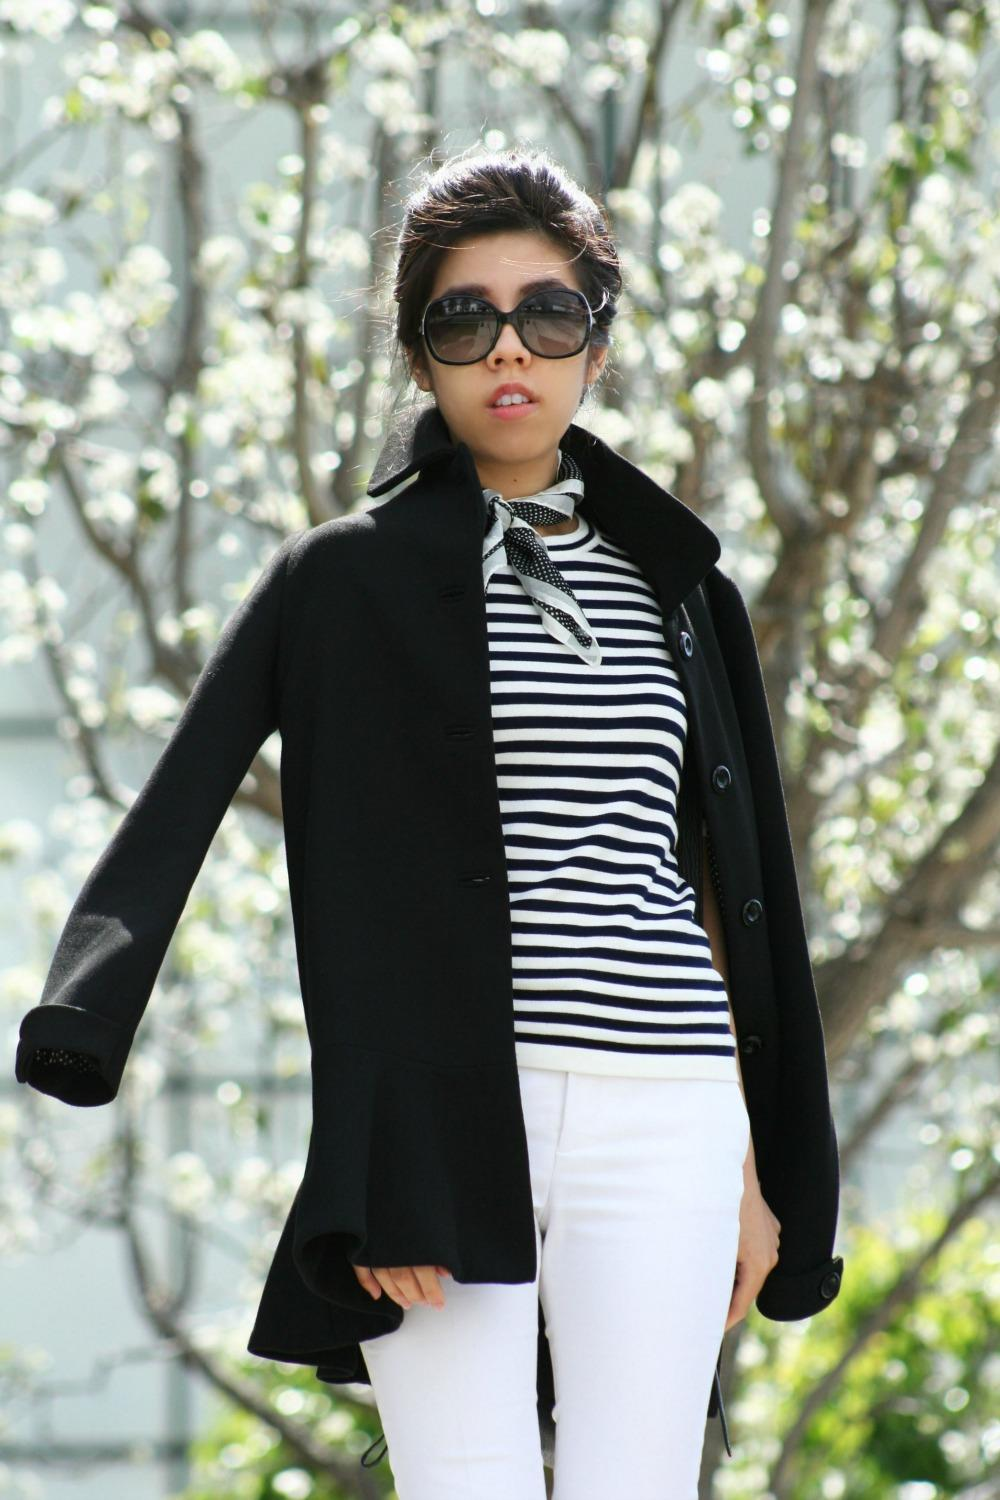 Classic Vintage Audrey Hepburn Style - French Girl - Adrienne Nguyen - Invictus